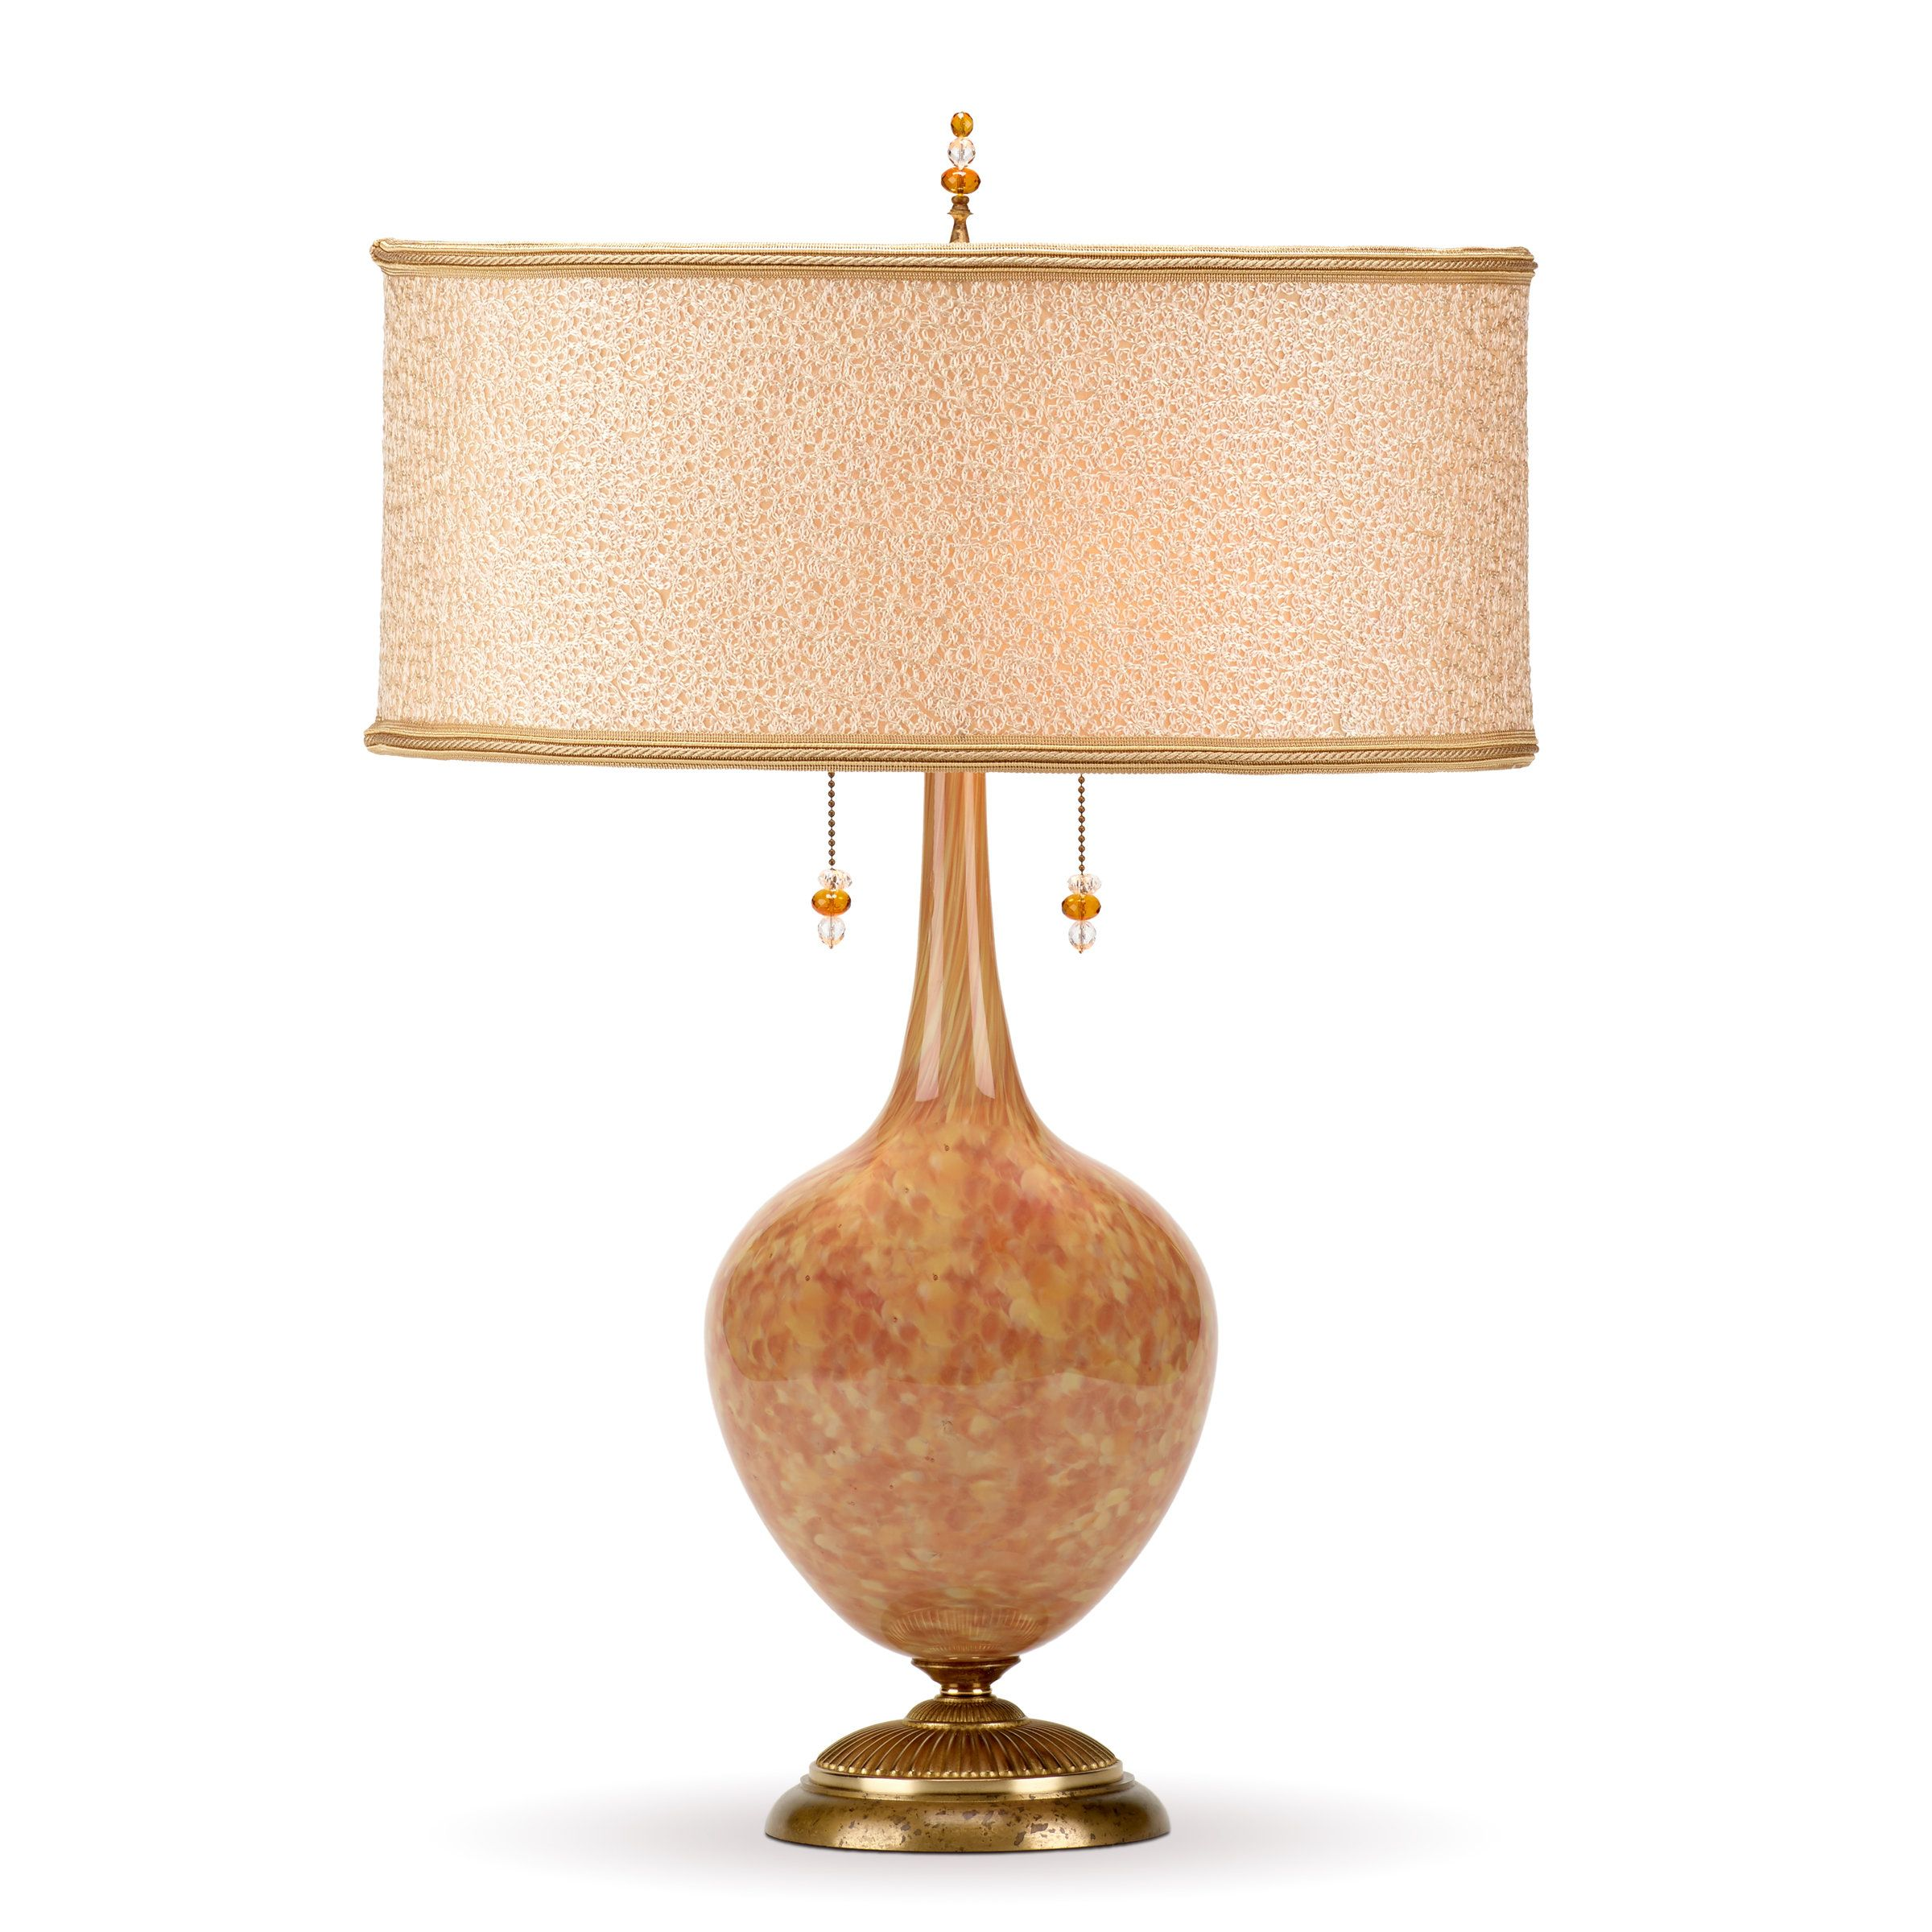 Stephanie By Susan Kinzig And Caryn Kinzig Mixed Media Table Lamp Artful Home Table Lamp Lamp Table Lamp Design